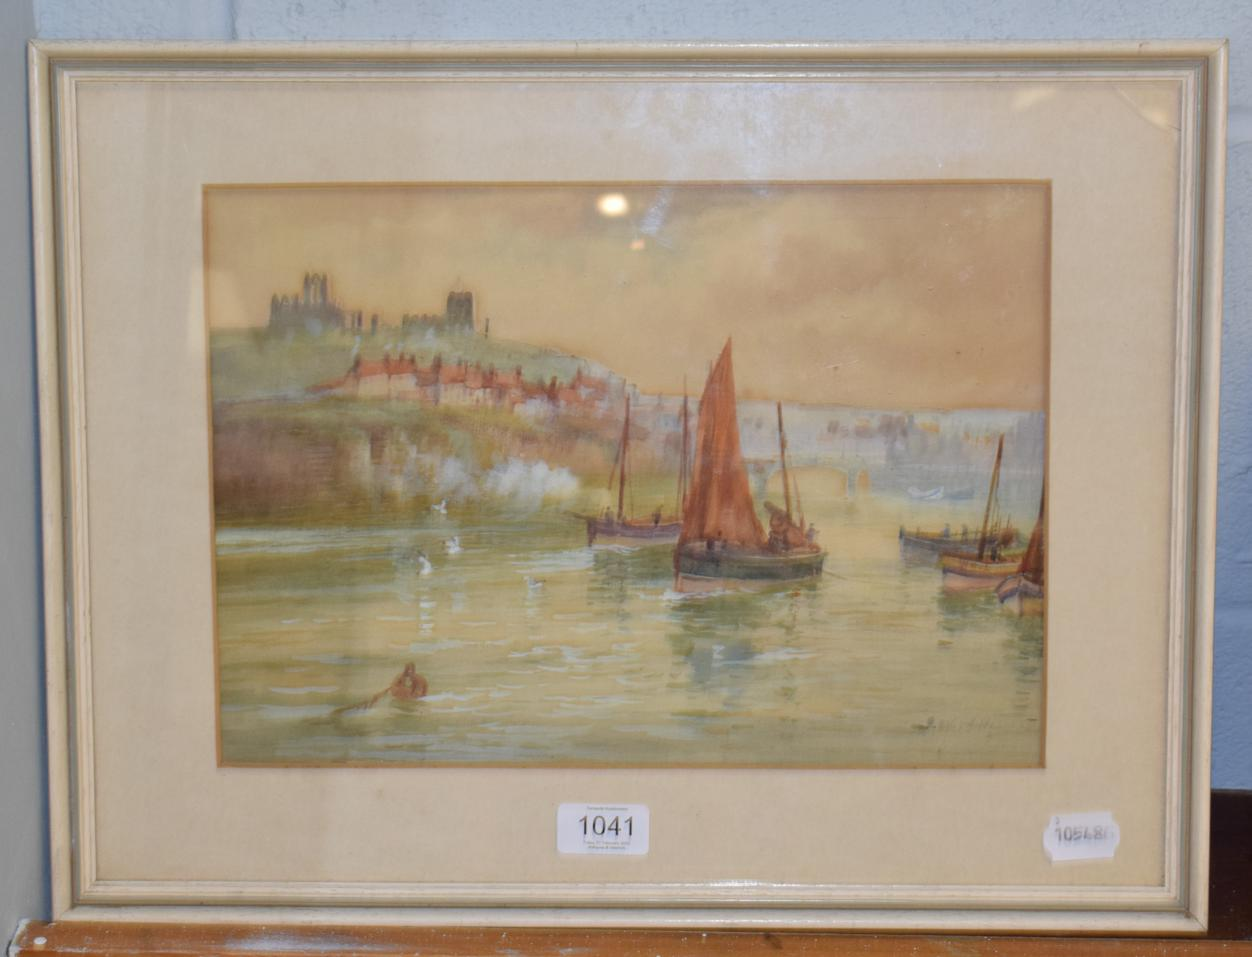 Lot 1041 - British School (19th/20th century) Boats off Whitby, indistinctly signed, watercolour